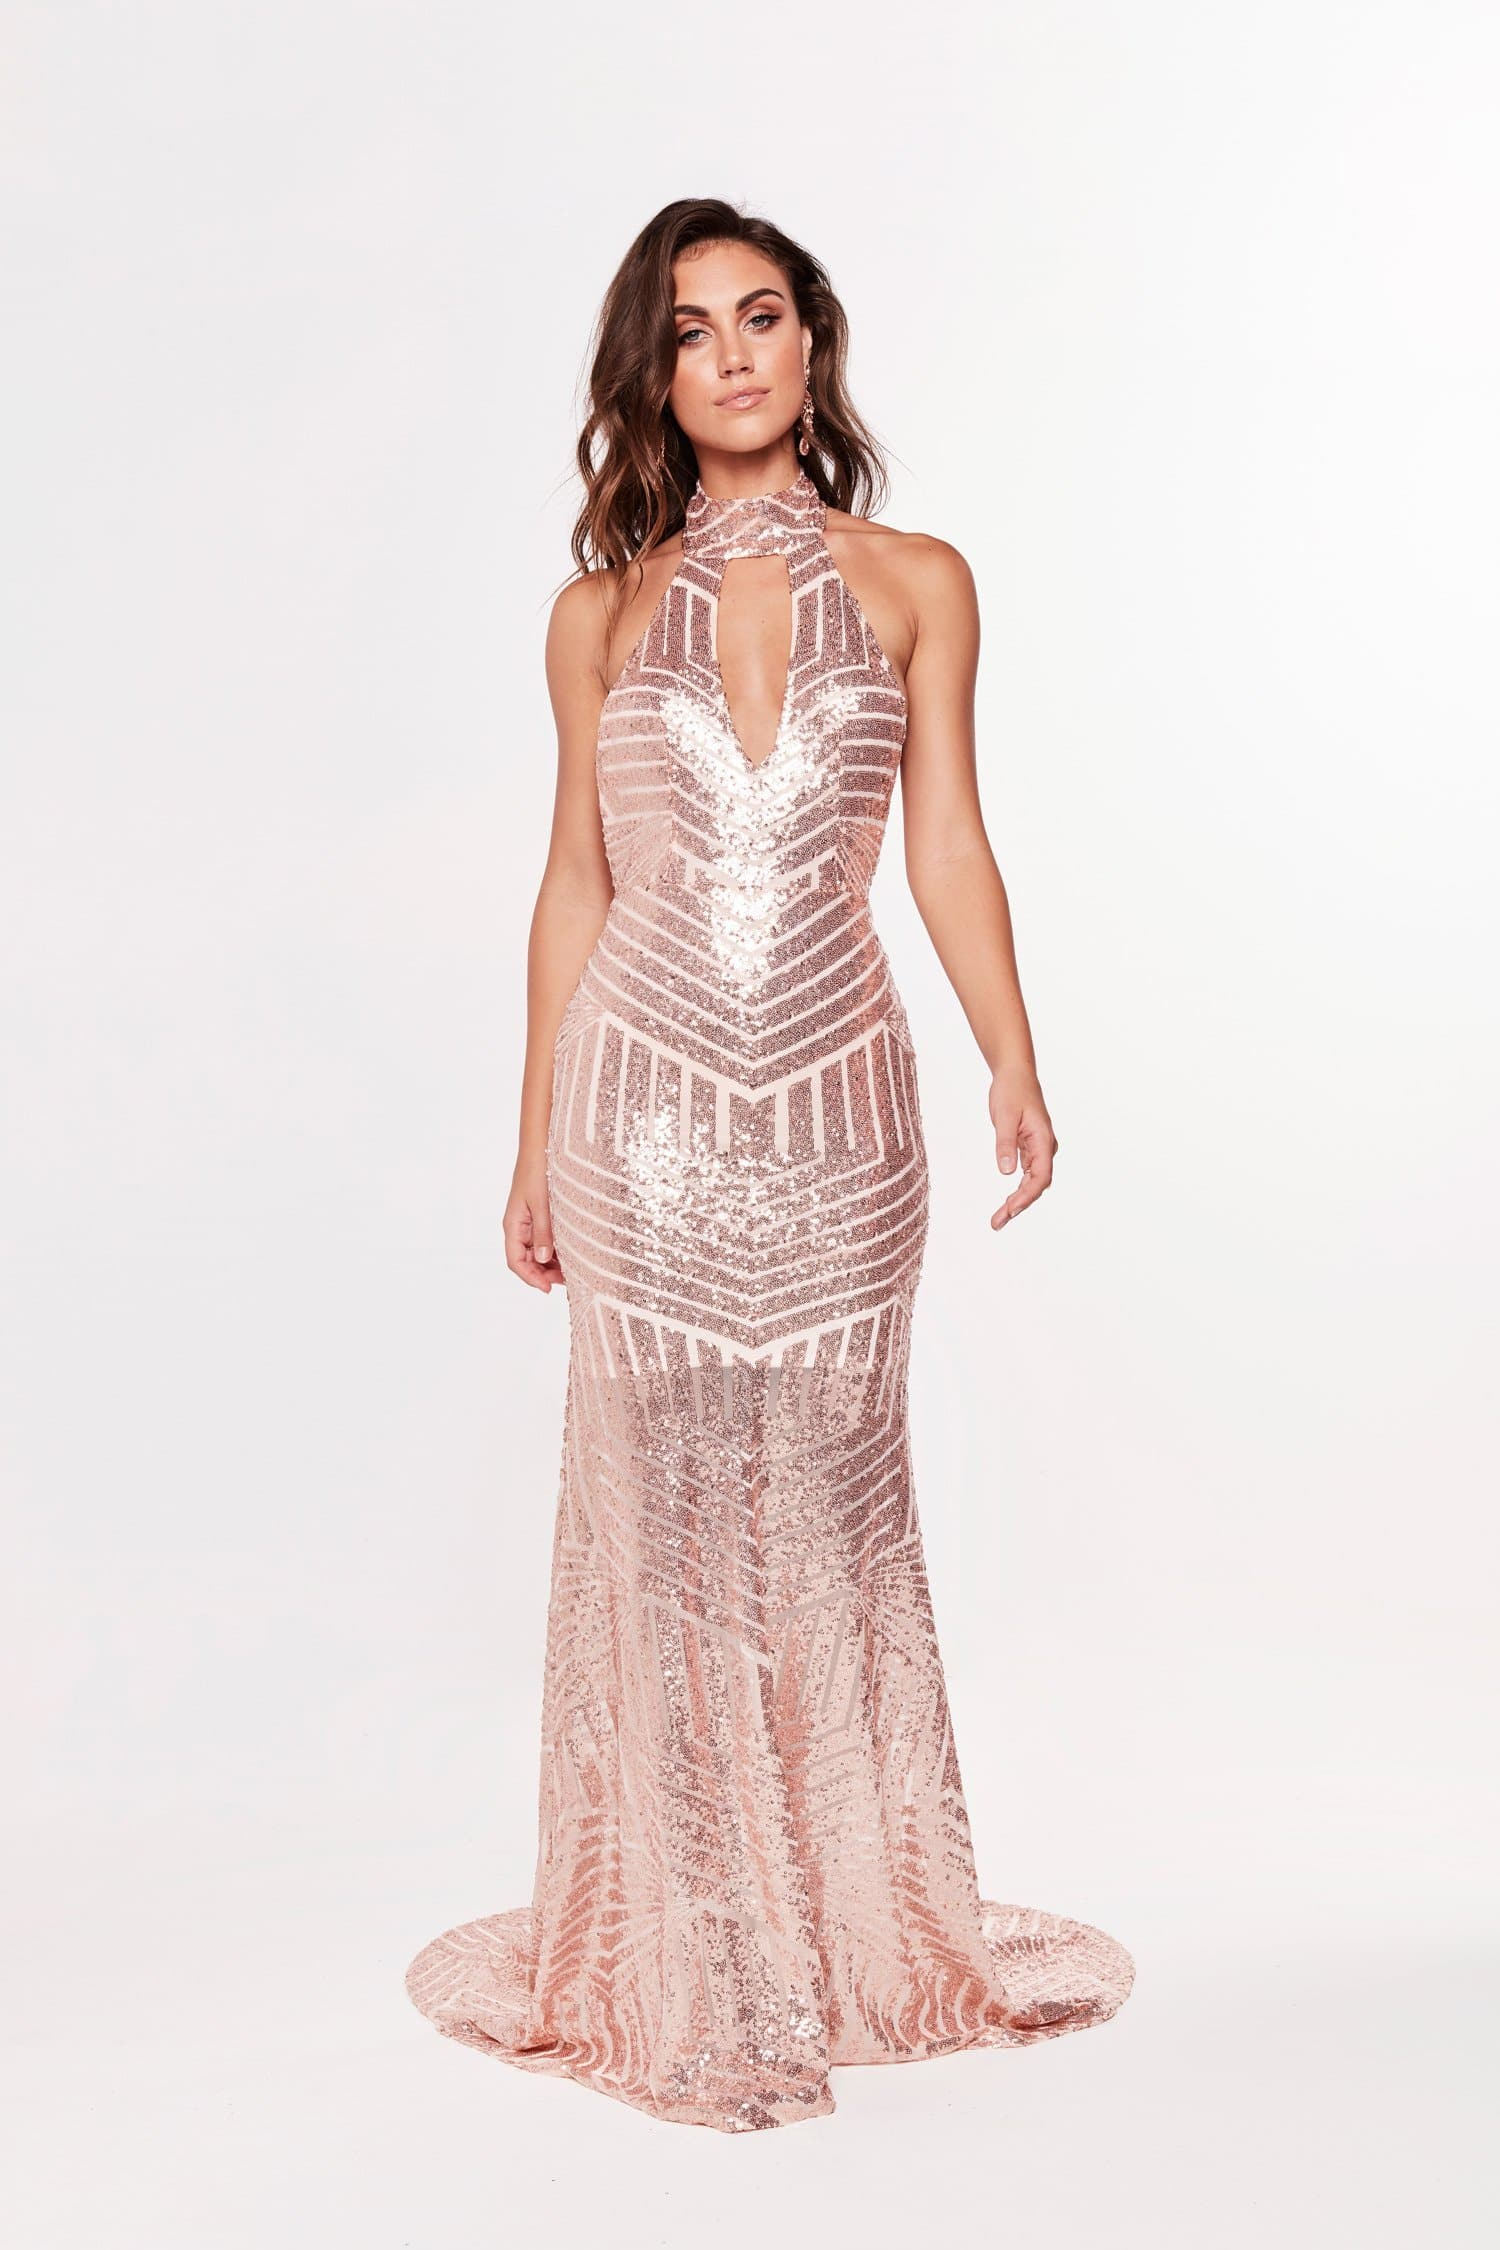 A&N Zabrina - Rose Gold Sequin Gown with Halter Neck and Open Back